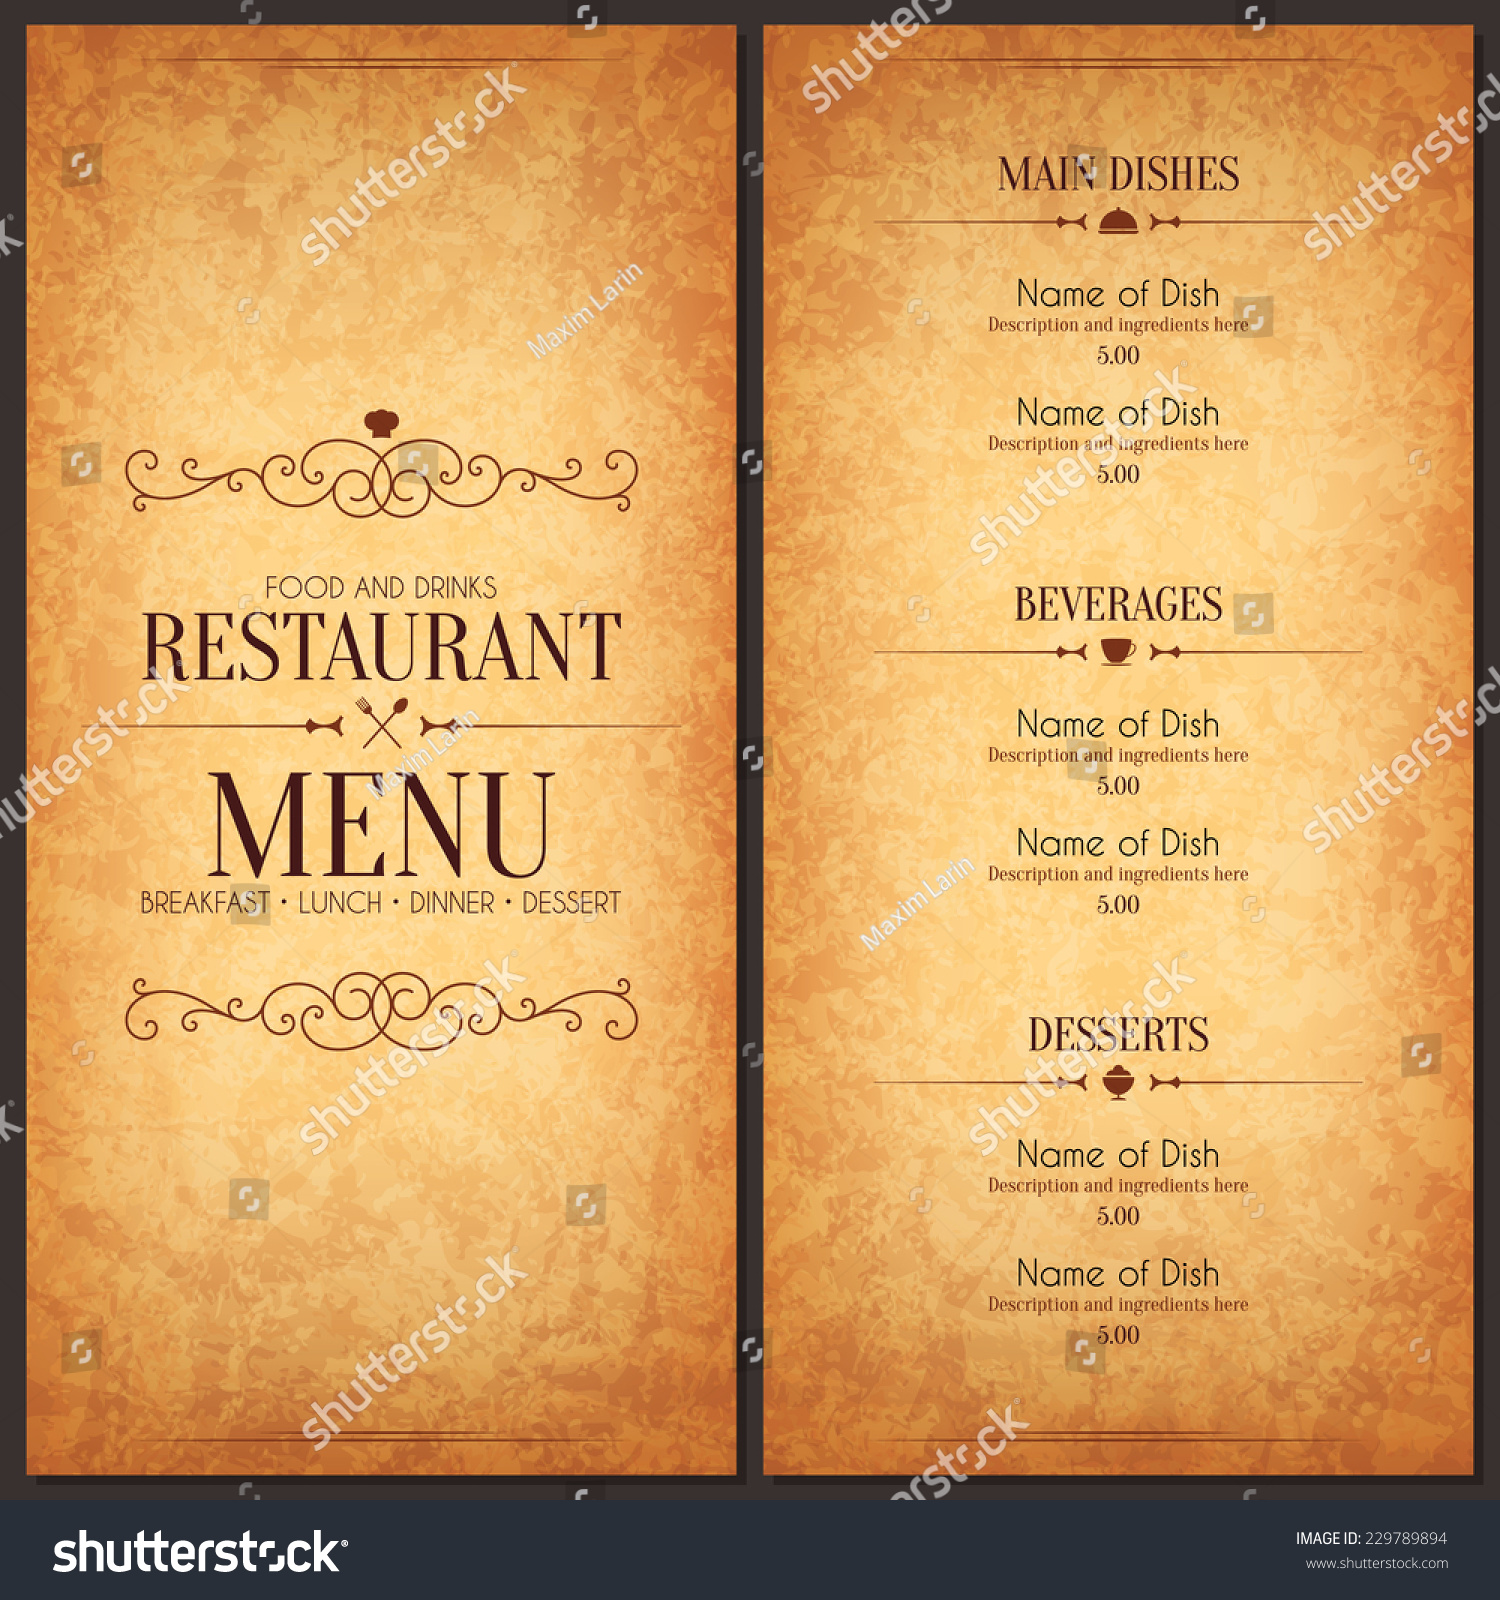 background on soup bars essay A vegetarian diet focuses on plants for food there is no single type of vegetarian diet nutrients to focus on include protein, iron and calcium.